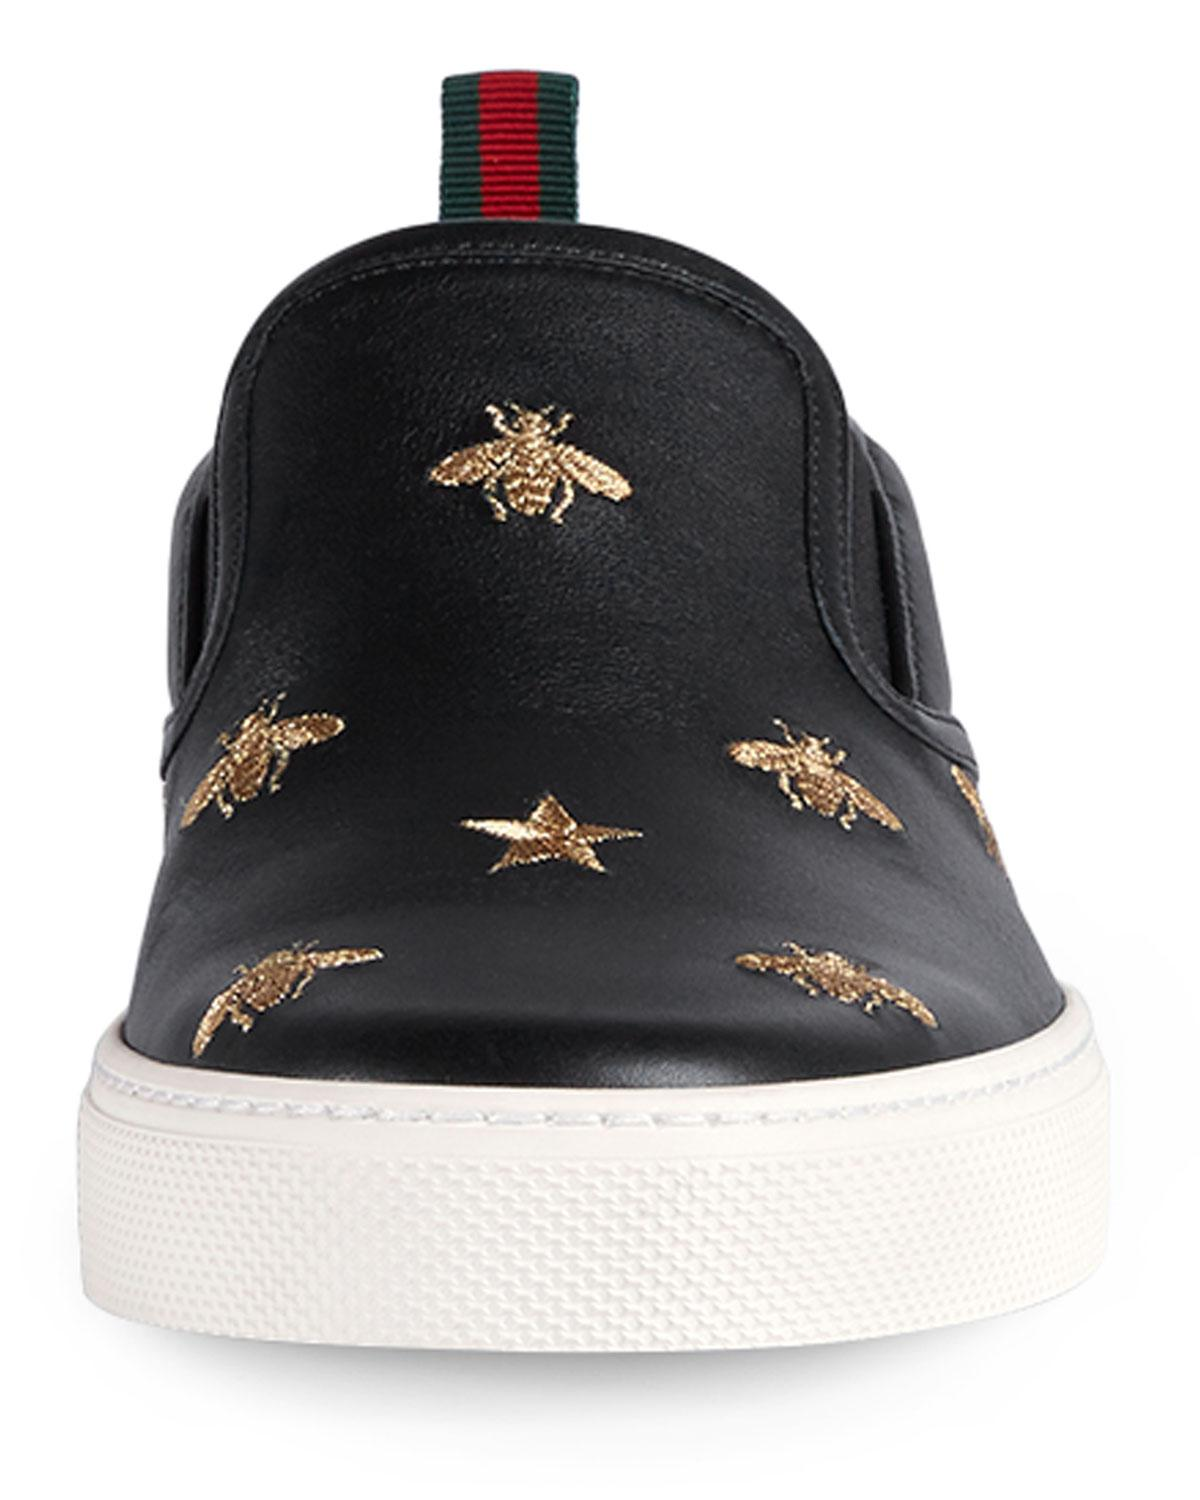 cab4470673d5 Lyst - Gucci Leather Slip-on Sneakers With Bees in Black for Men - Save 14%